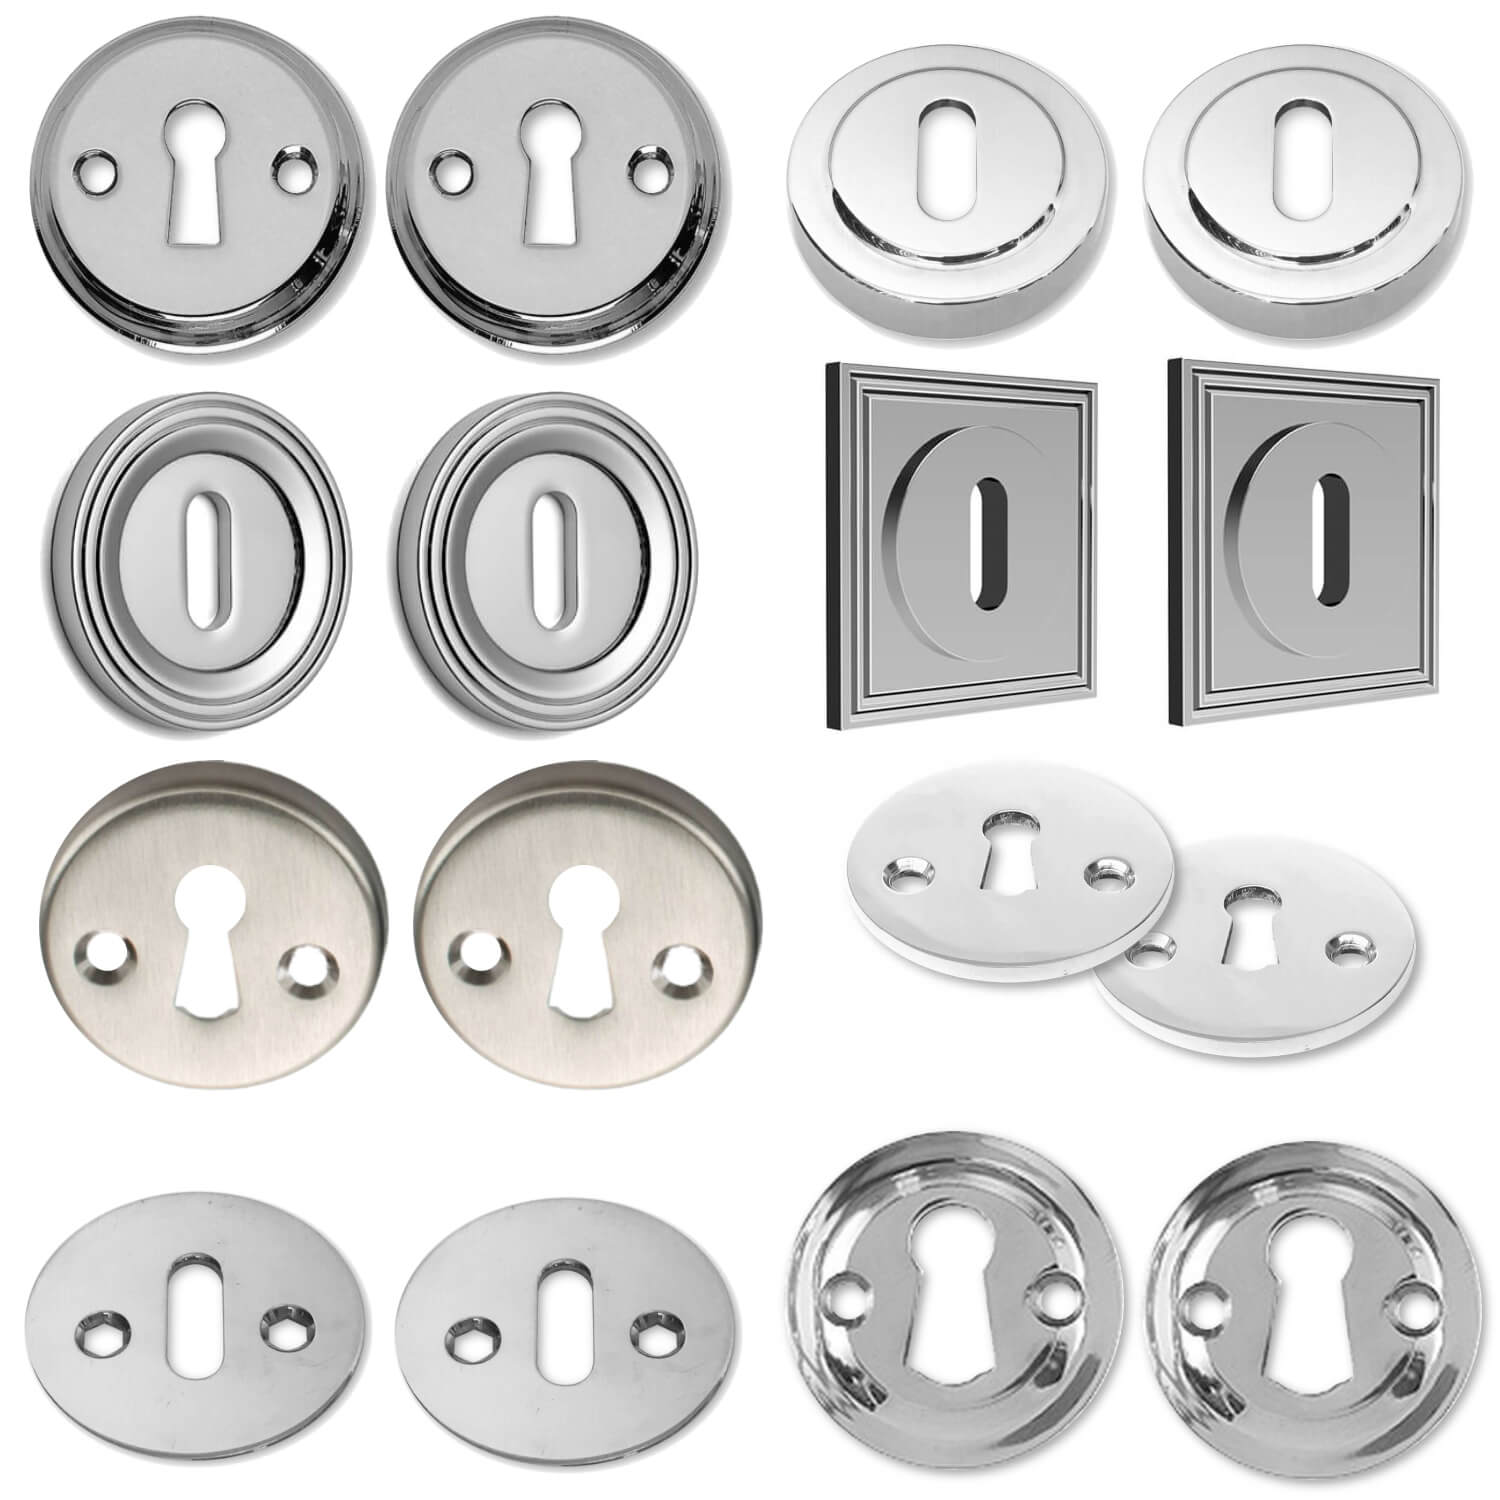 Escutcheon - Chrome & Nickel